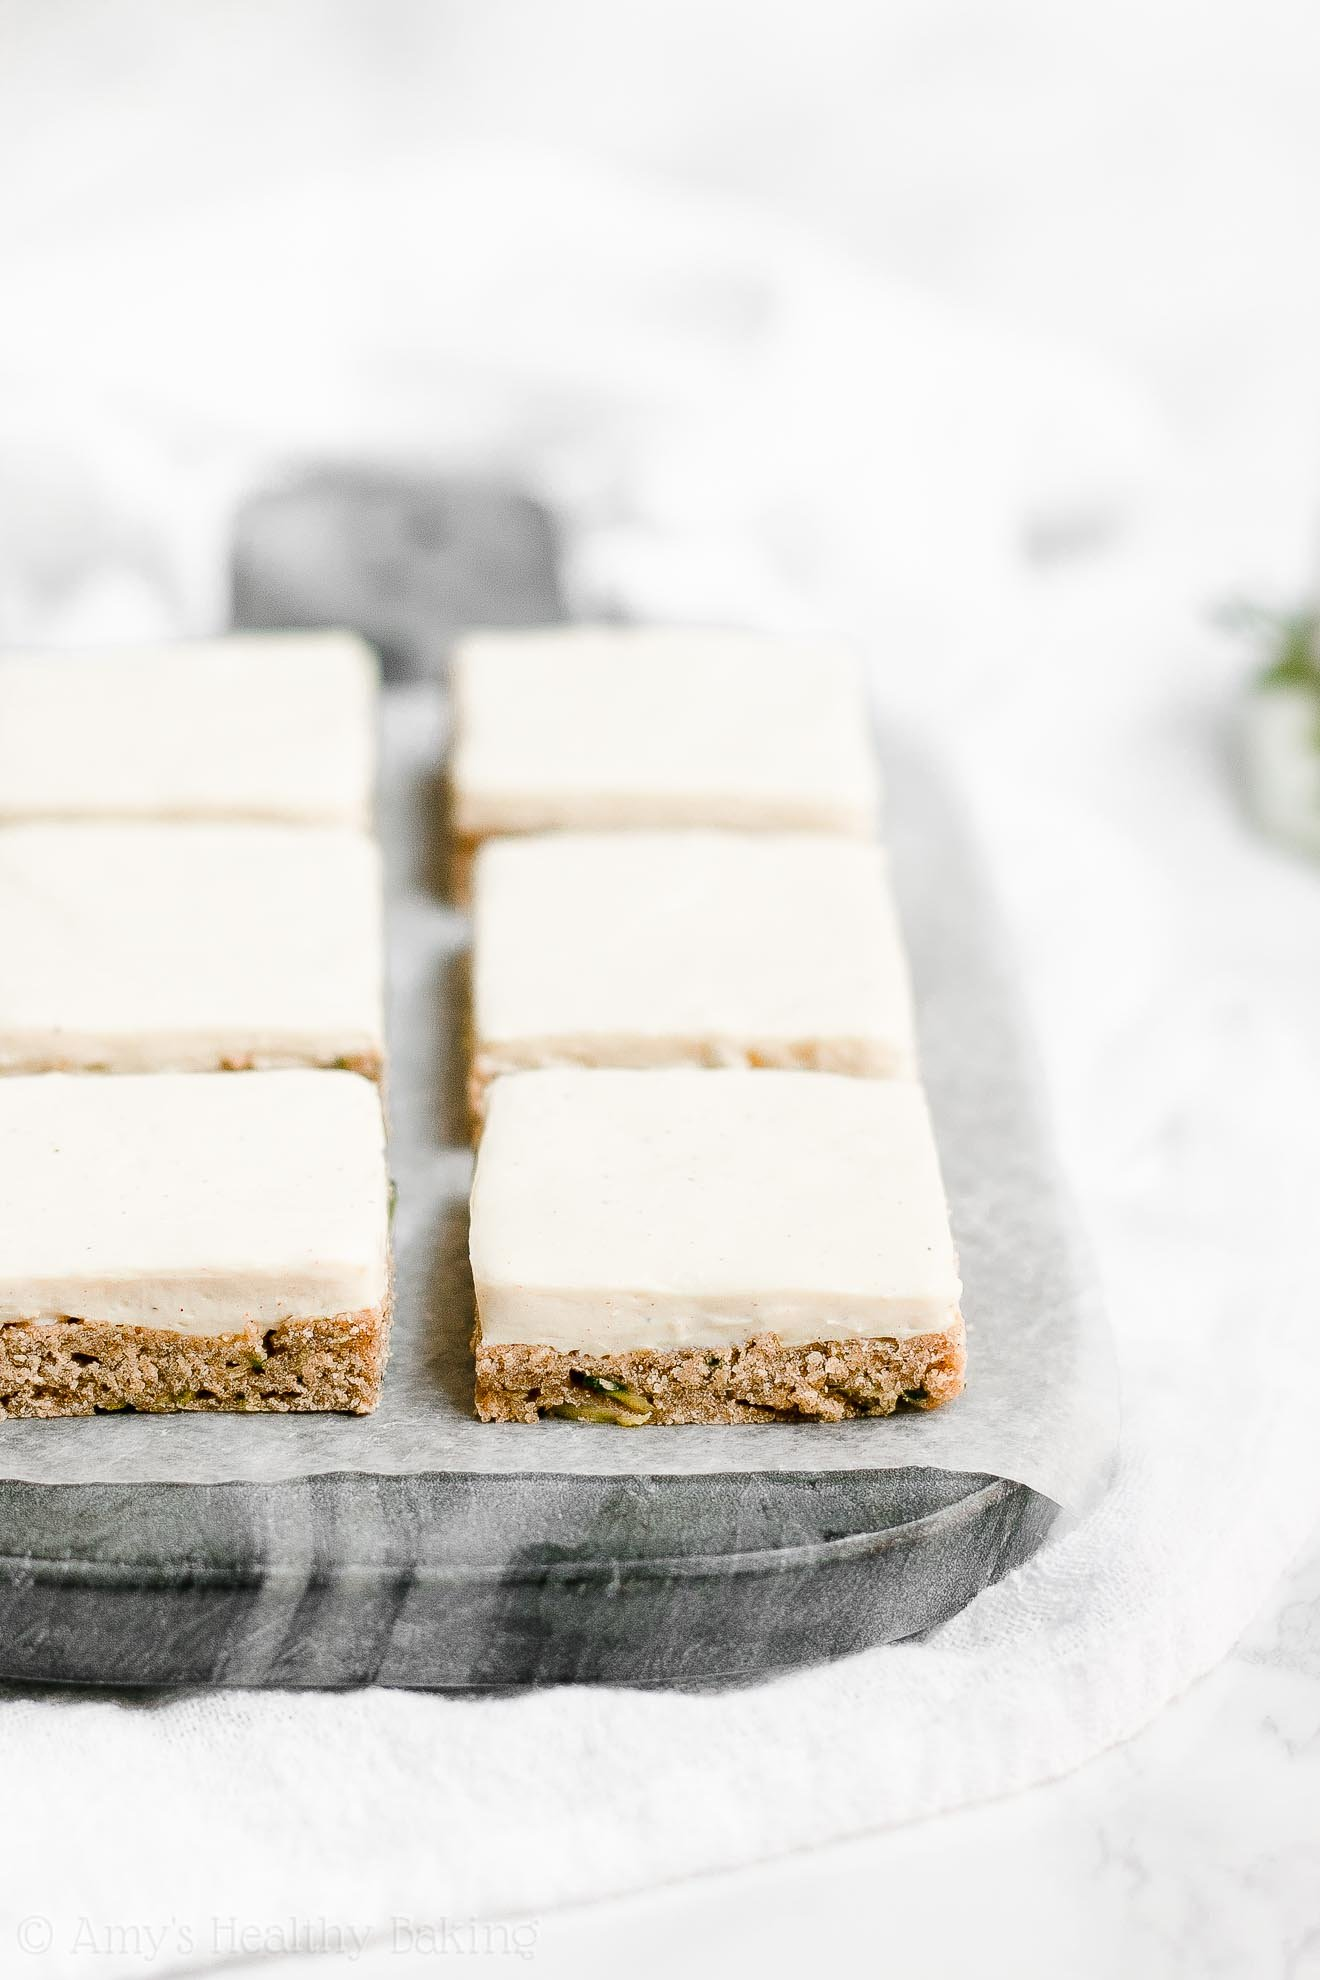 Healthy Low Sugar Zucchini Cookie Bars with Cream Cheese Frosting